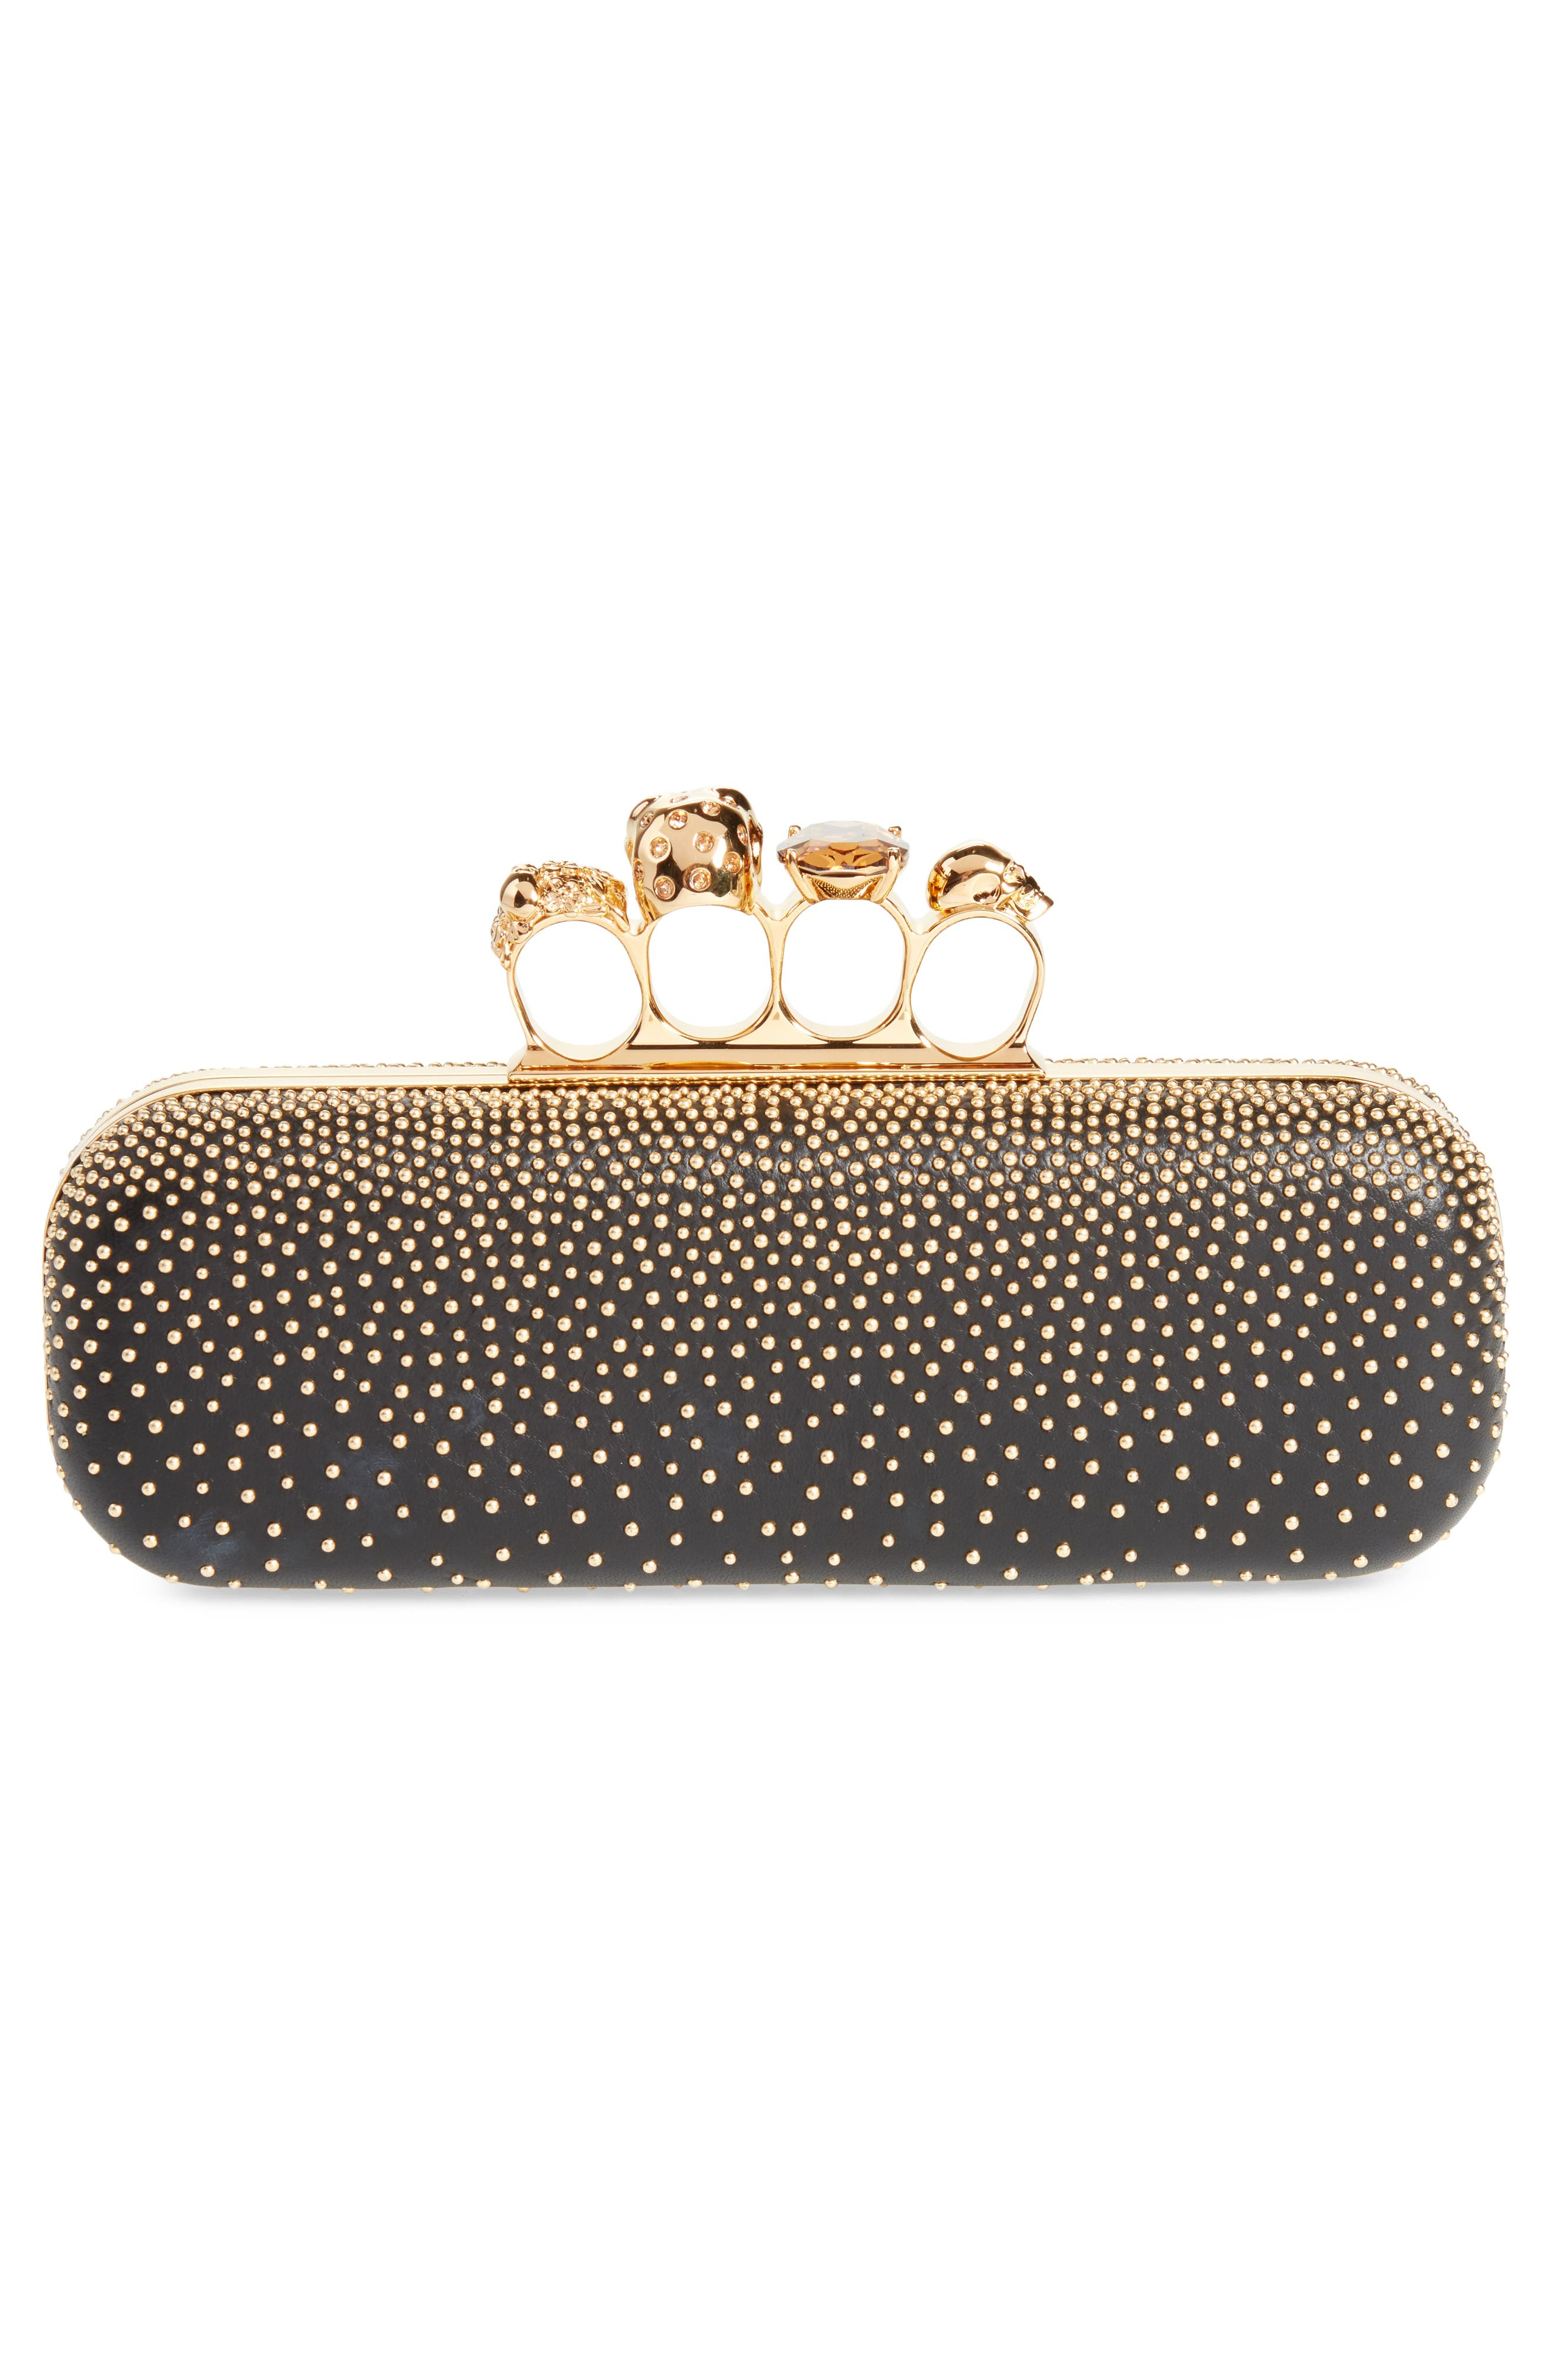 Studded Leather Knuckle Clutch,                             Alternate thumbnail 3, color,                             001